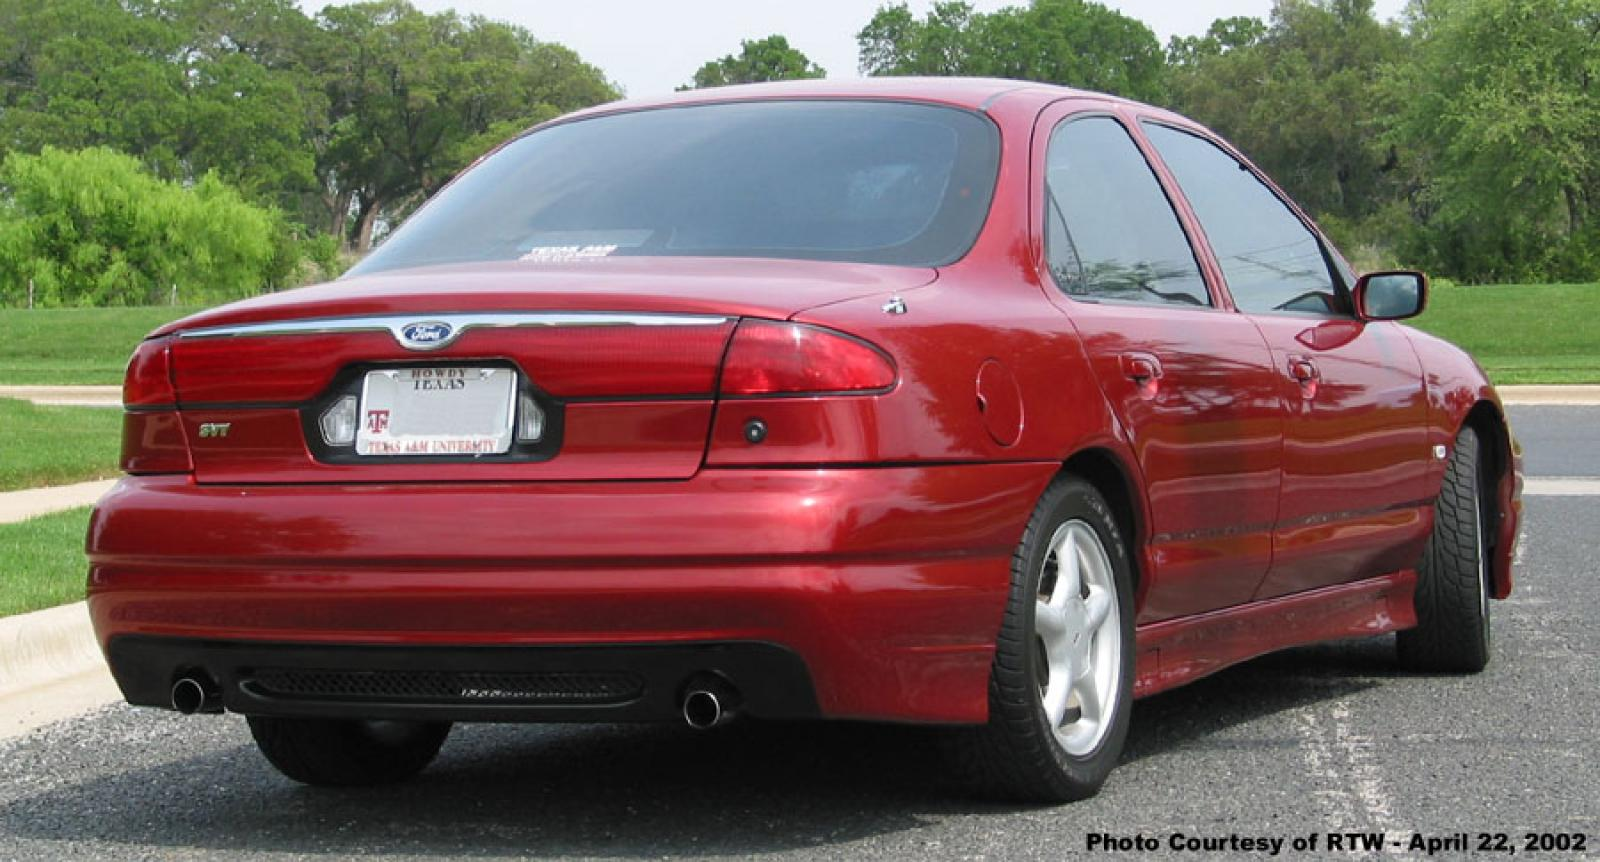 1998 ford contour svt information and photos zombiedrive. Black Bedroom Furniture Sets. Home Design Ideas